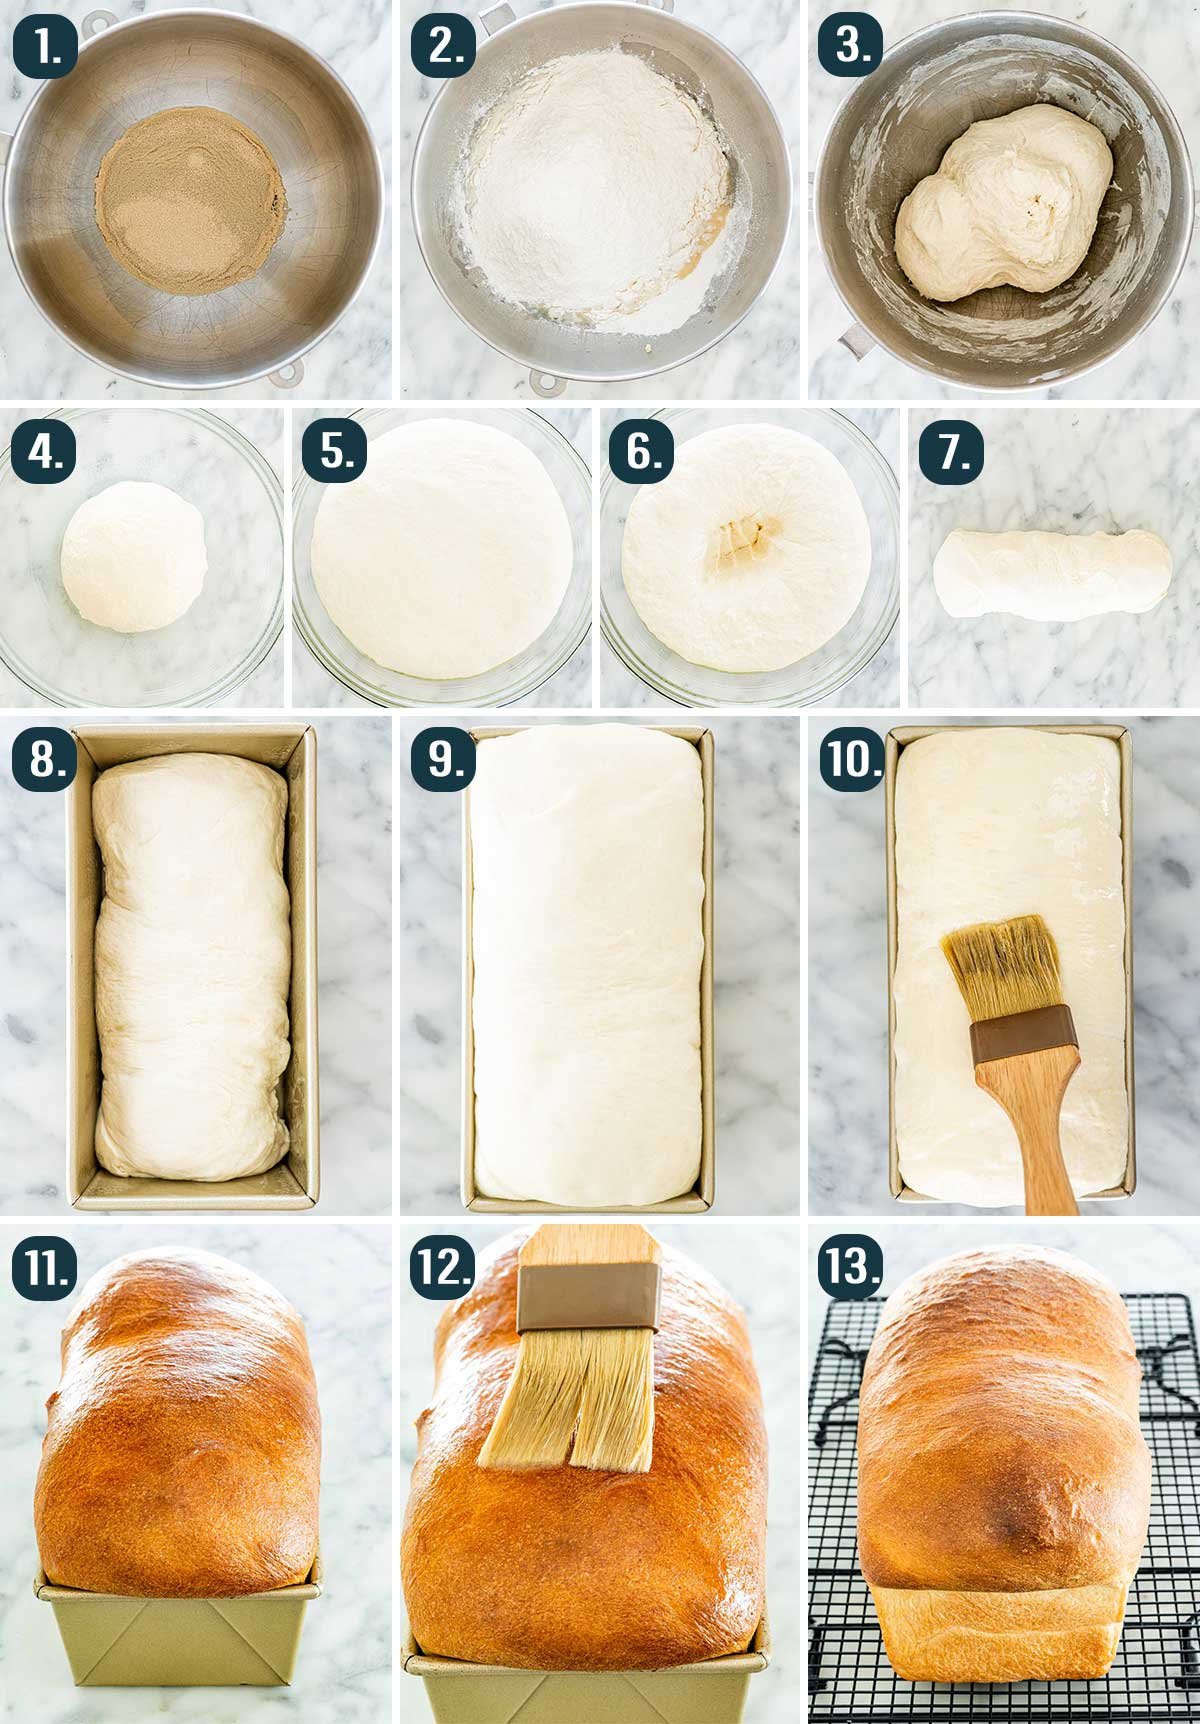 process shots showing how to make white bread